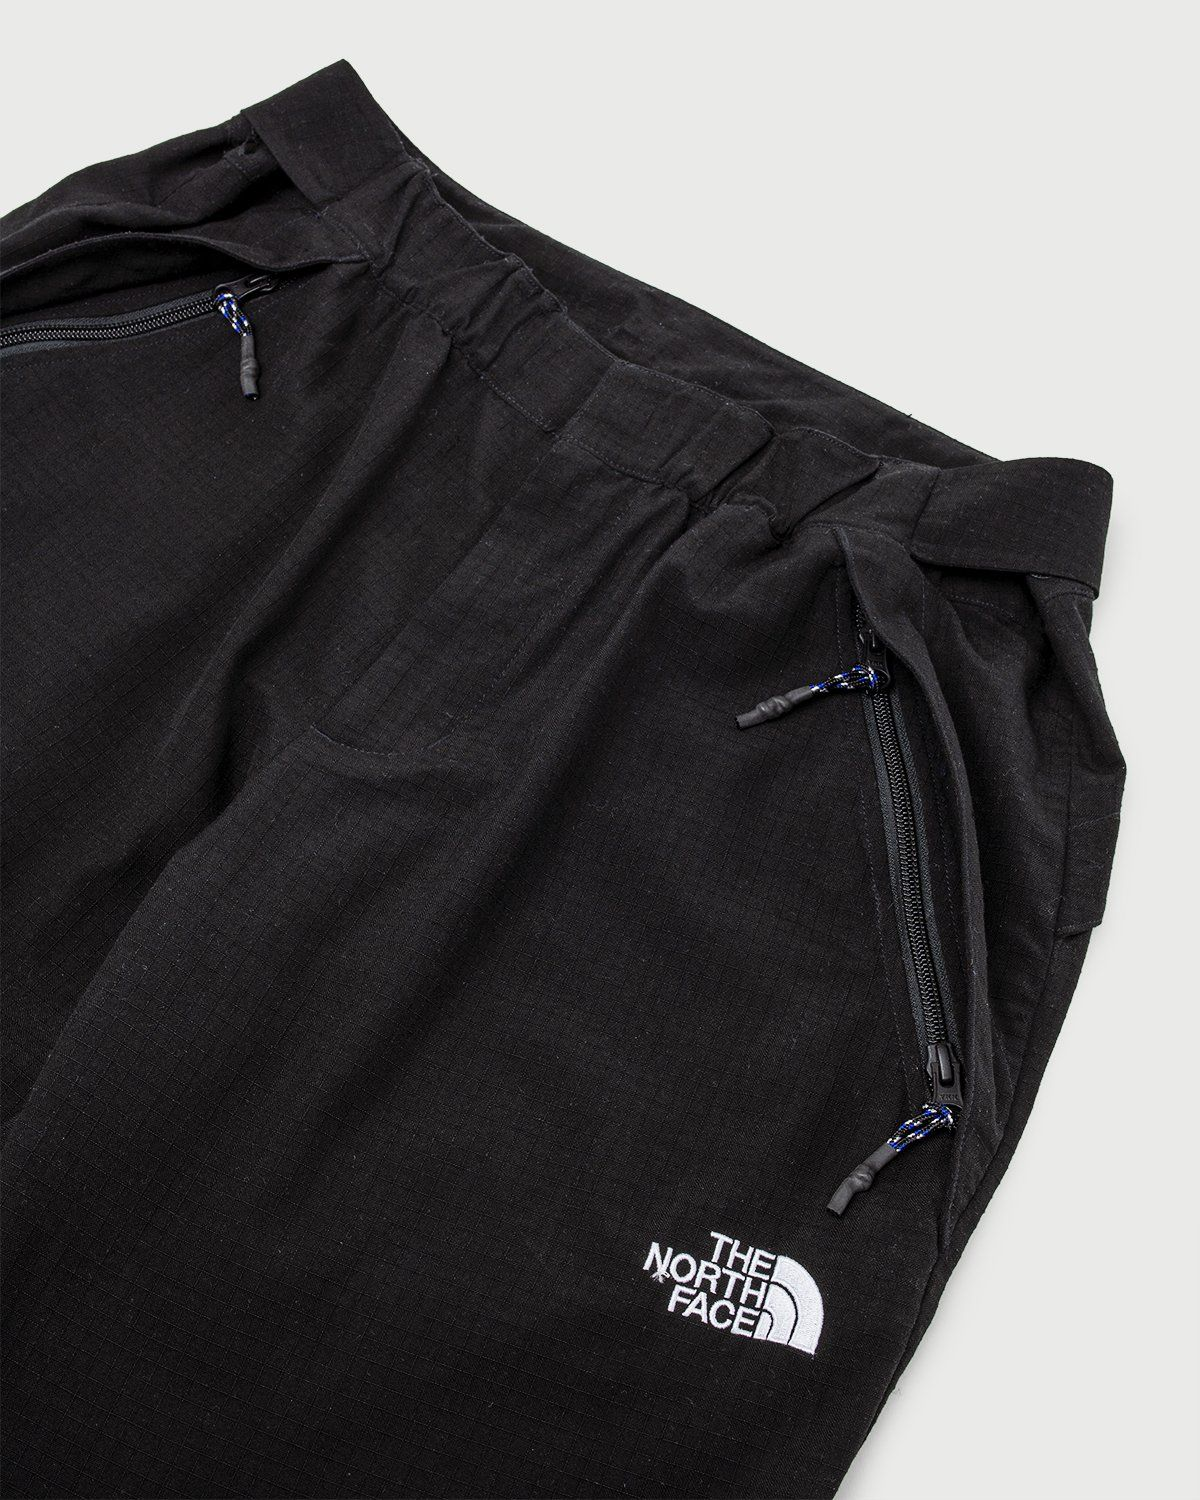 The North Face Black Series - Ripstop Trousers Black - Image 3